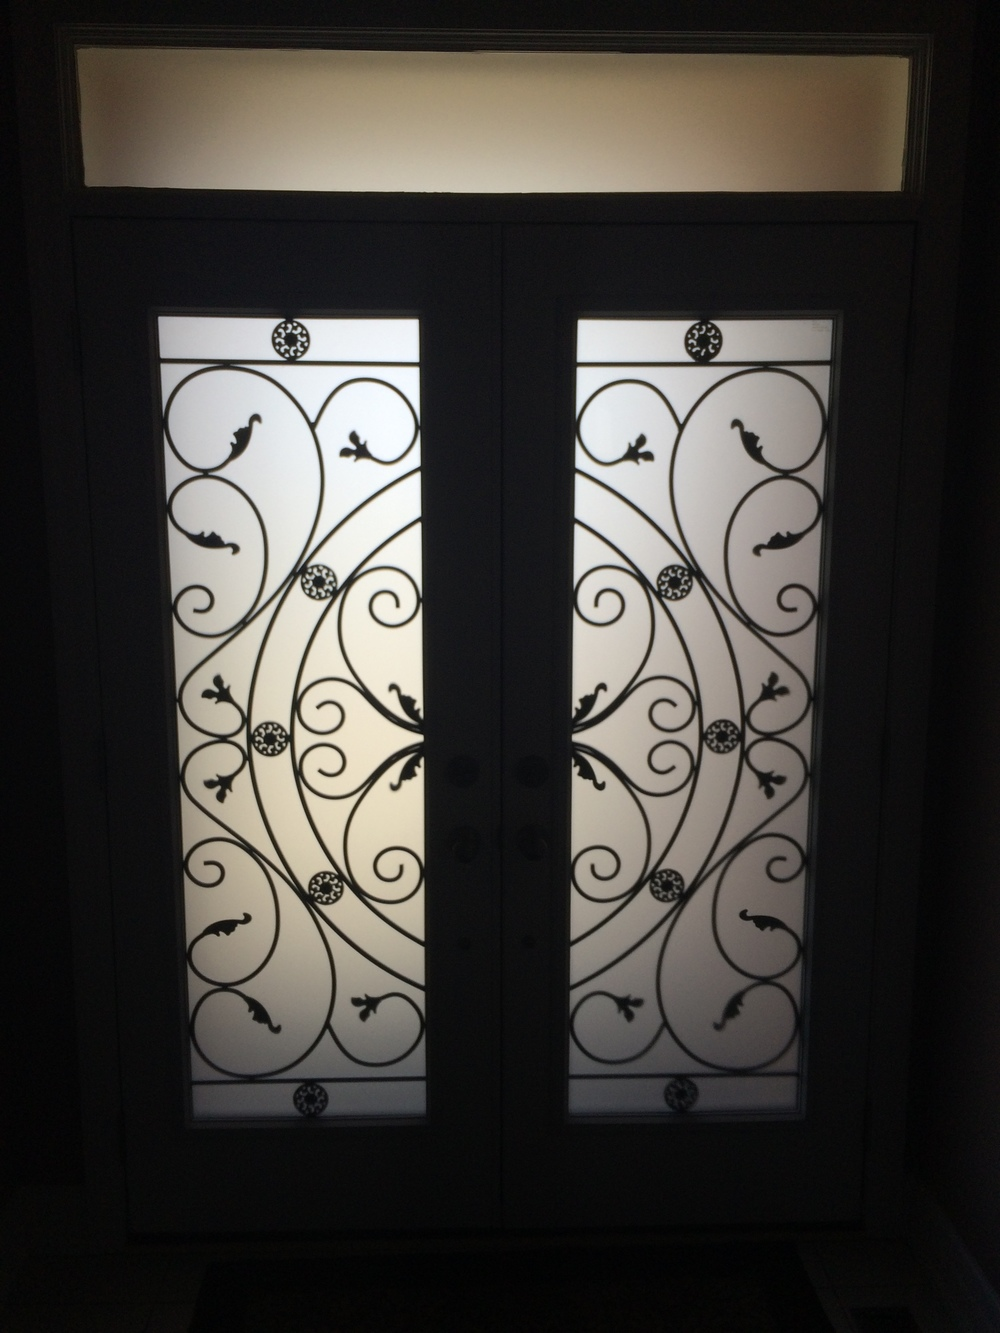 Campbellsford-Wrought-Iron-Glass-Door-Inserts-waterdown-Ontario